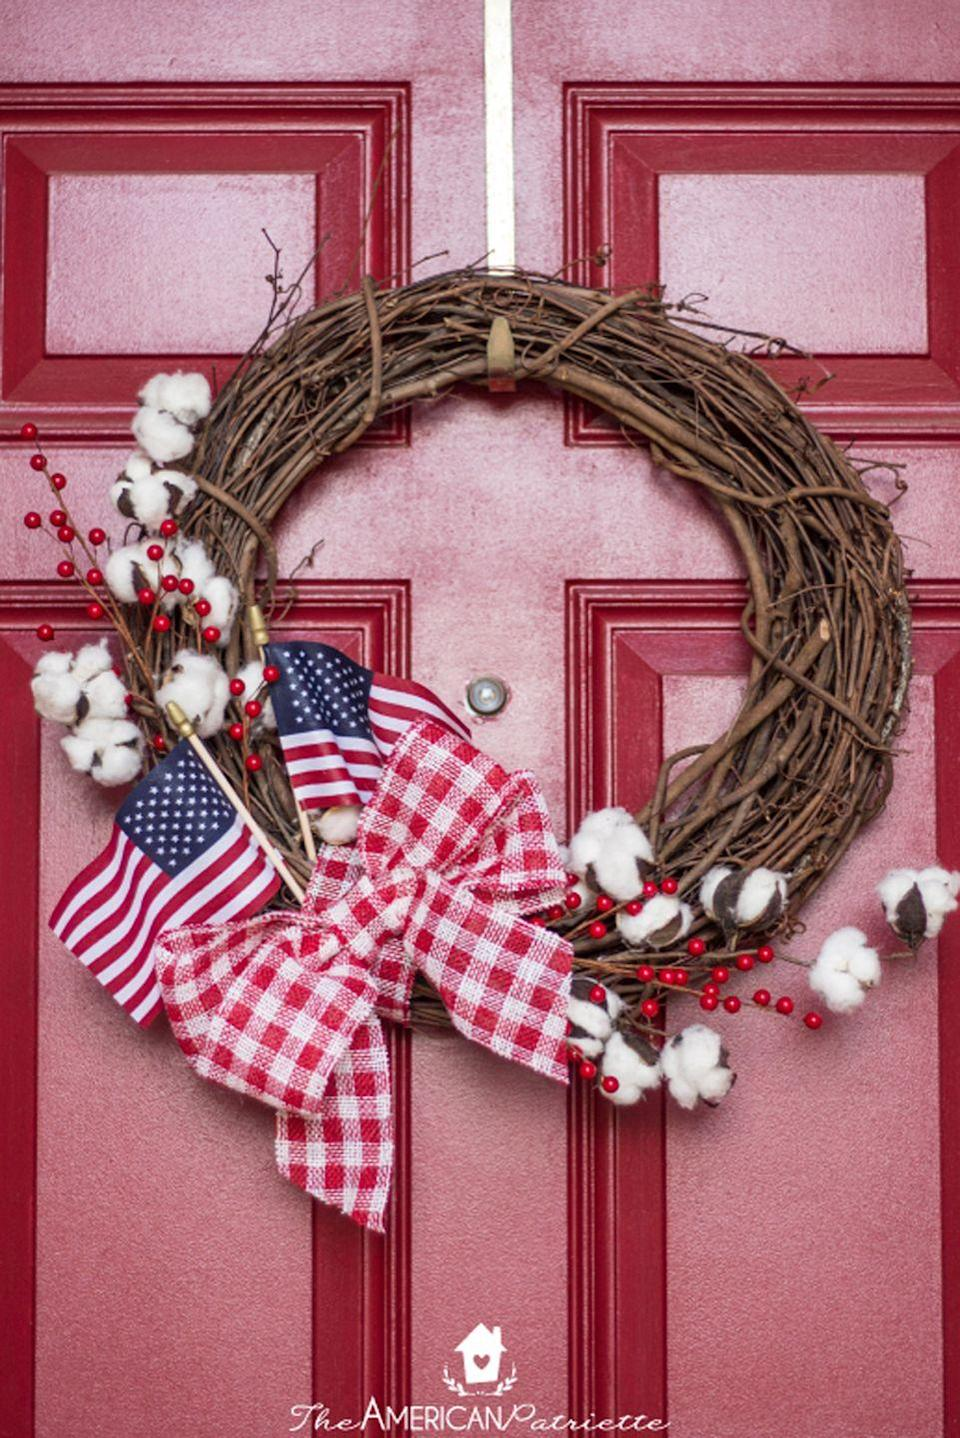 """<p>Add a touch of farmhouse decor to your door with a grapevine wreath adorned with cotton stems, American flags, and a red gingham bow.<br></p><p><strong>Get the tutorial at <a href=""""https://www.theamericanpatriette.com/farmhouse-american-flag-wreath/"""" rel=""""nofollow noopener"""" target=""""_blank"""" data-ylk=""""slk:The American Patriette"""" class=""""link rapid-noclick-resp"""">The American Patriette</a>.</strong><br></p><p><a class=""""link rapid-noclick-resp"""" href=""""https://www.amazon.com/Reliant-Ribbon-93228W-036-40F-Celine-Plaid/dp/B0845KW16T/ref=sr_1_4?tag=syn-yahoo-20&ascsubtag=%5Bartid%7C10050.g.4464%5Bsrc%7Cyahoo-us"""" rel=""""nofollow noopener"""" target=""""_blank"""" data-ylk=""""slk:SHOP RED GINGHAM RIBBON"""">SHOP RED GINGHAM RIBBON</a></p>"""